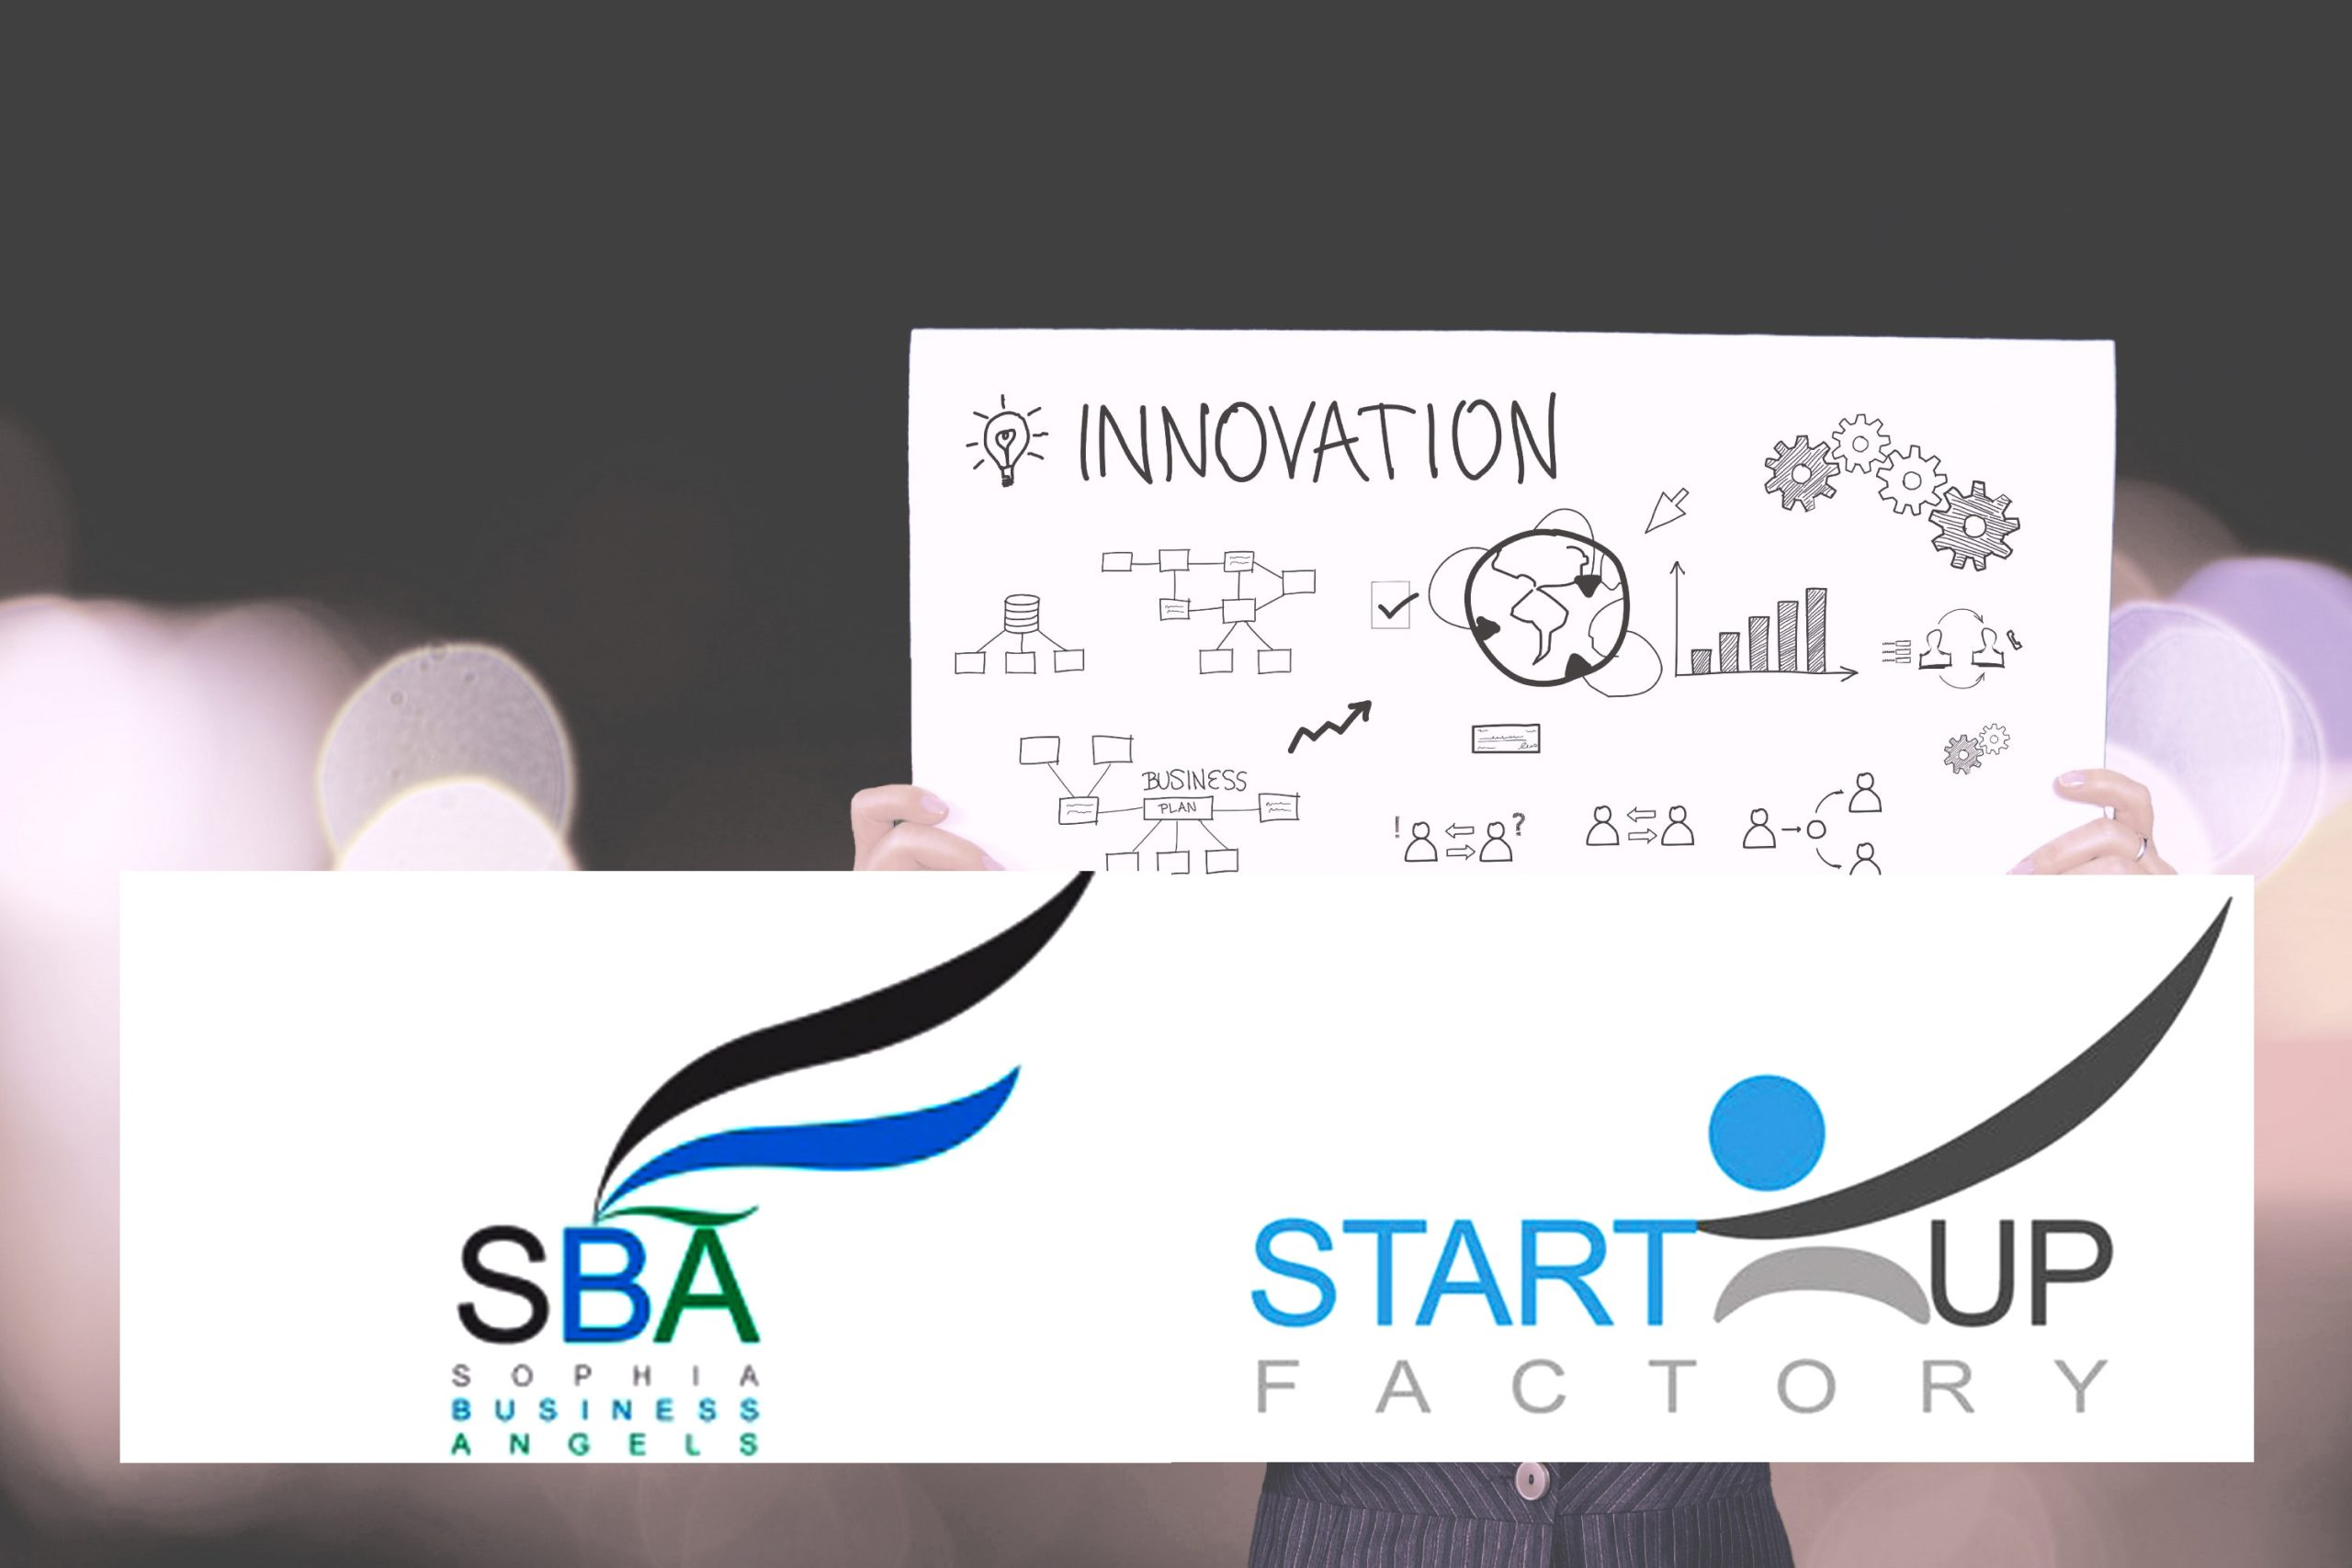 Start Up Factory: a powerful platform for pitching your business idea